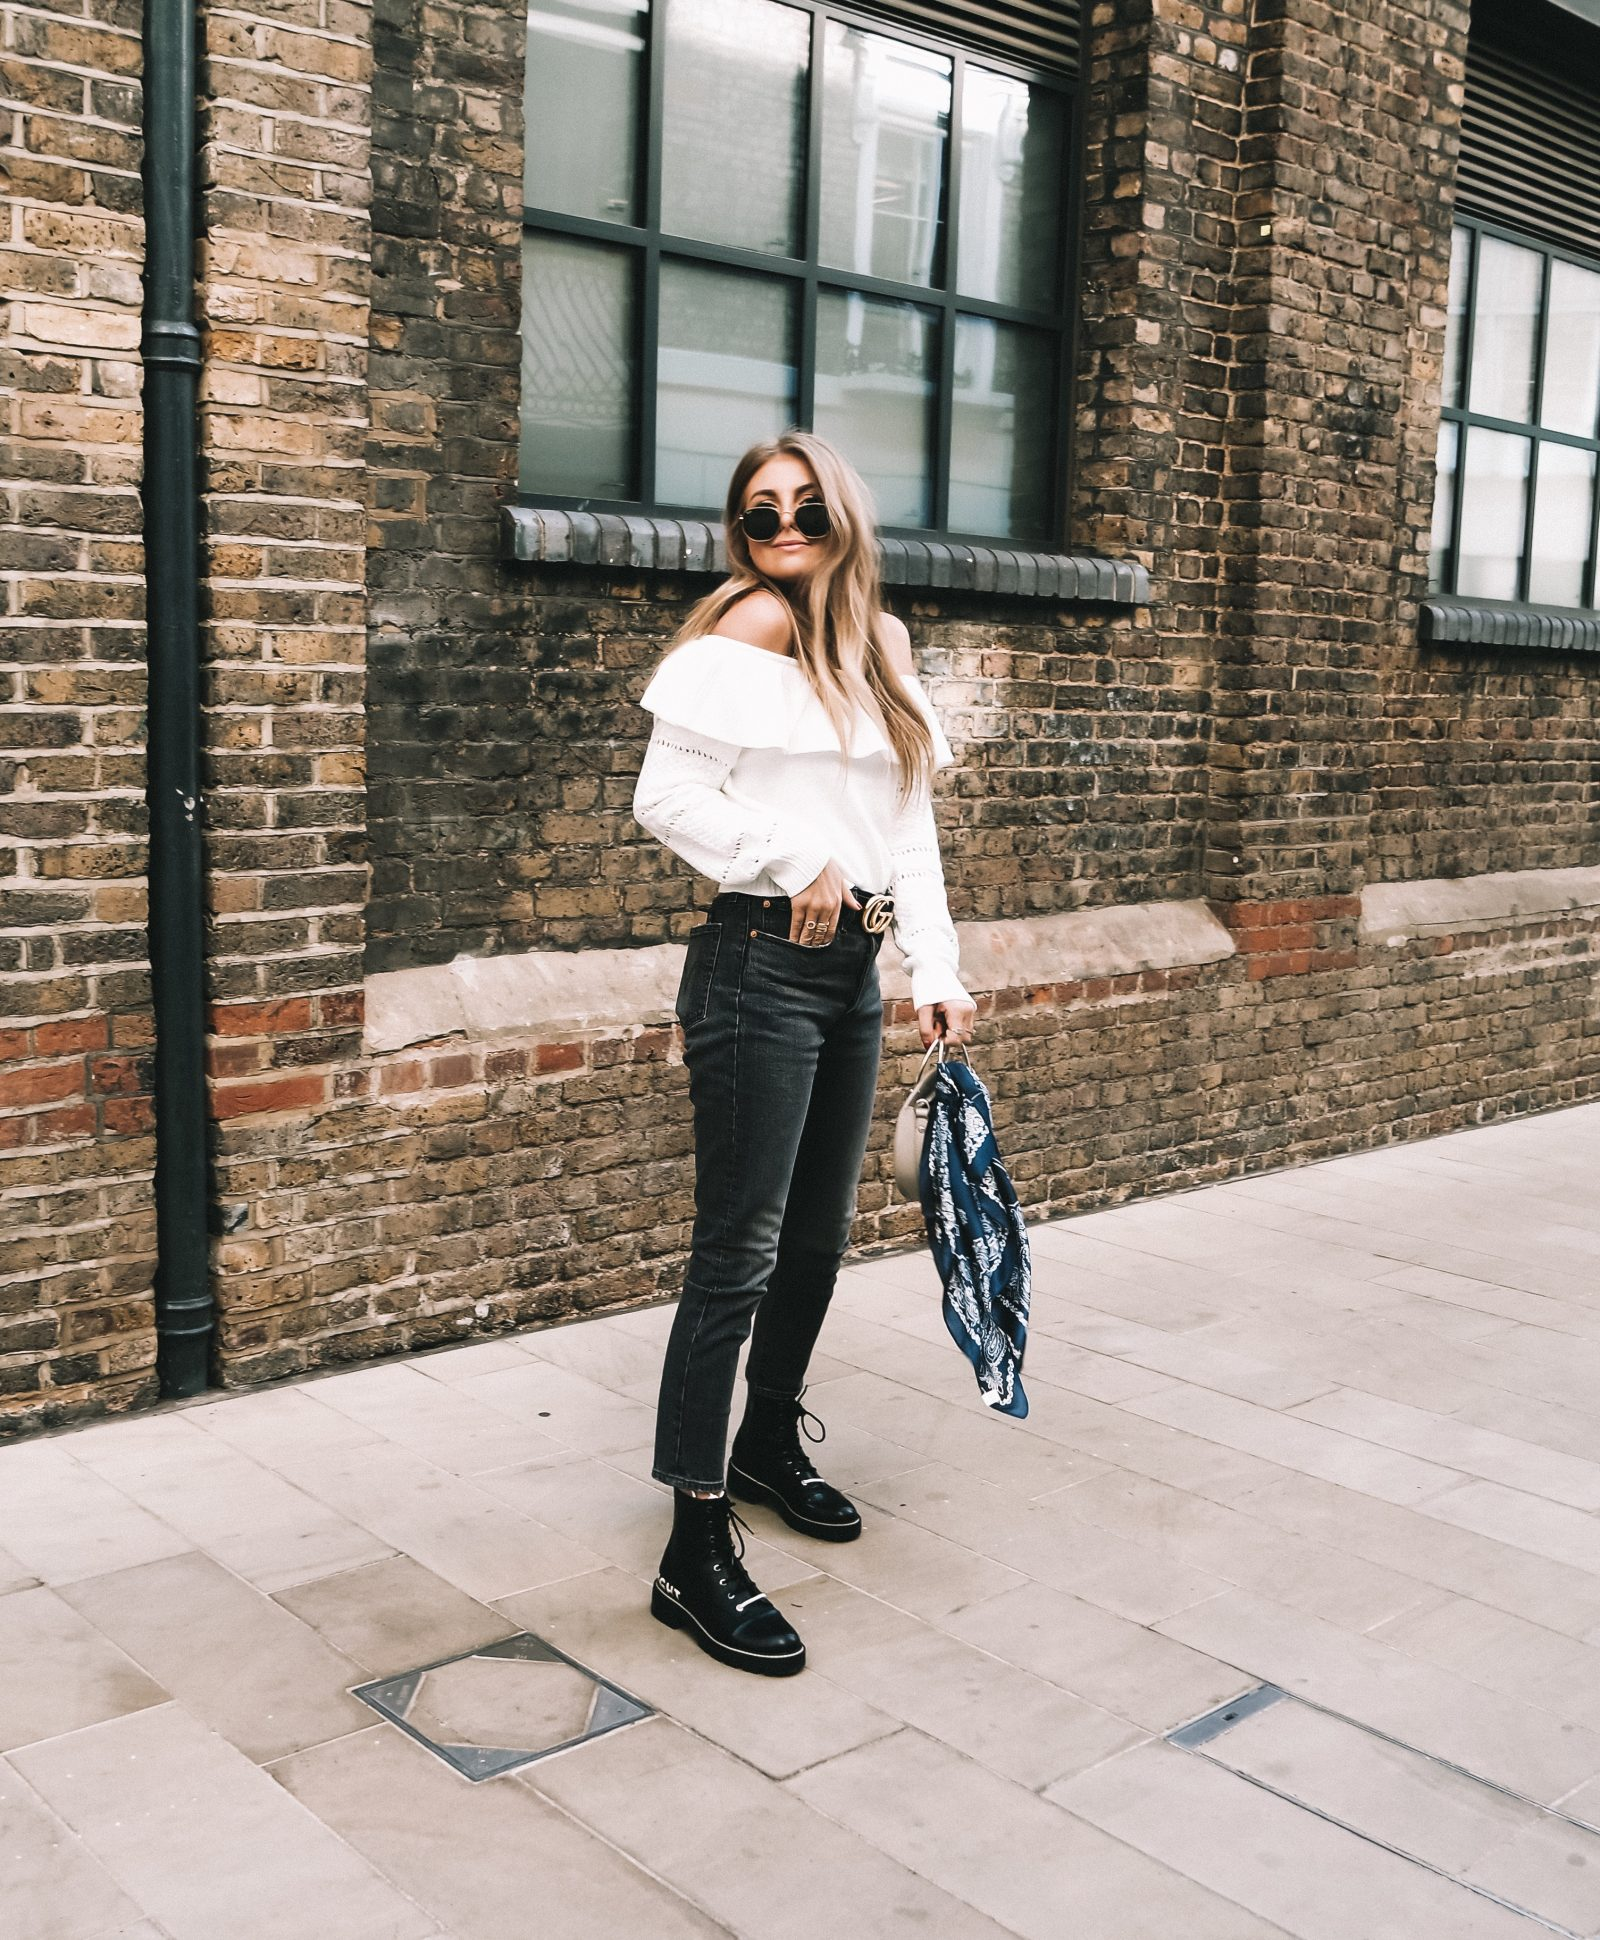 Moving To London - Lulus Outfit - Levis Jeans - Sinead Crowe